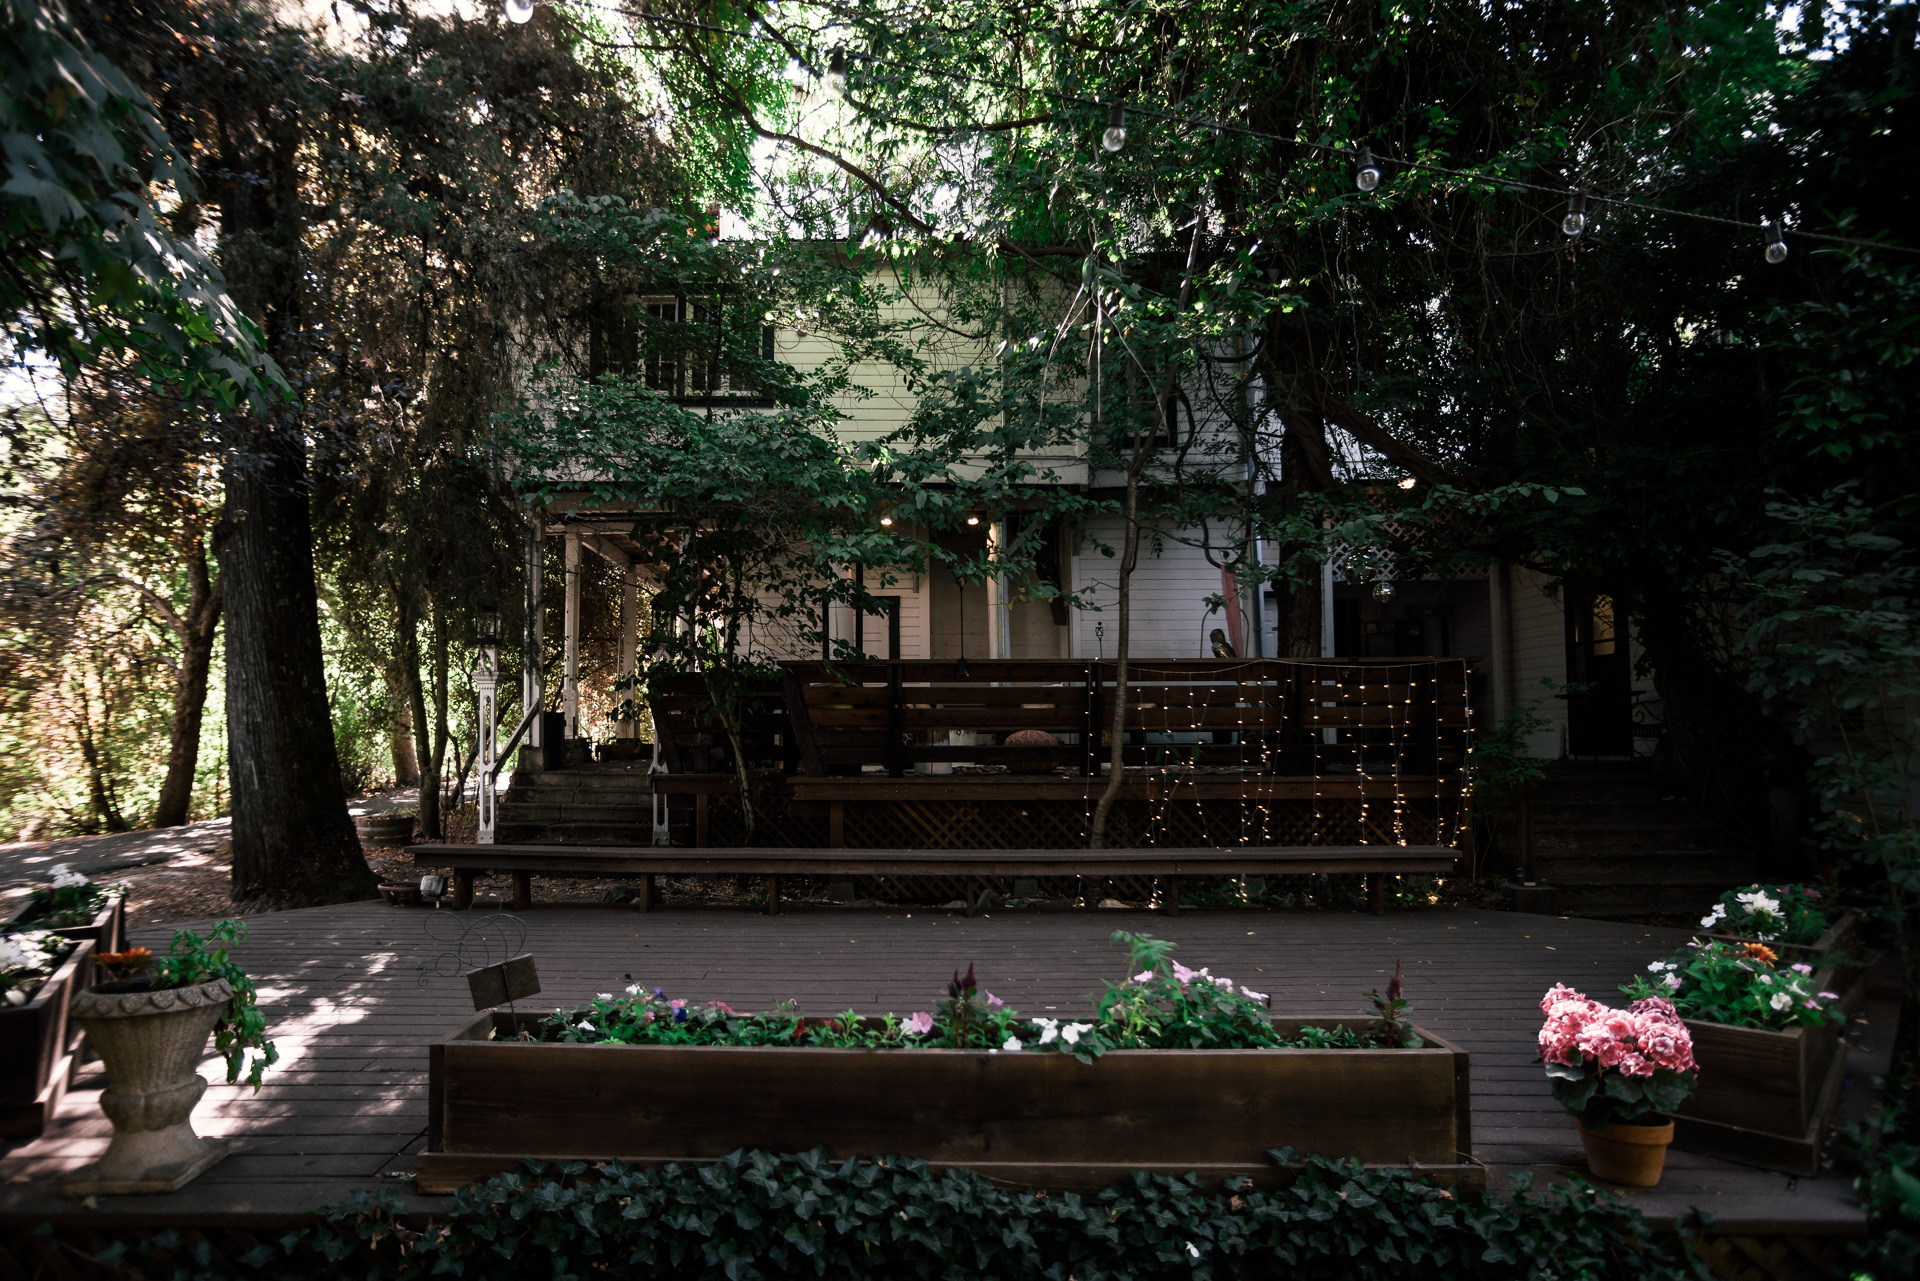 rustic wedding venue shot by wedding photographer at the charming St. George Hotel in Volcano California